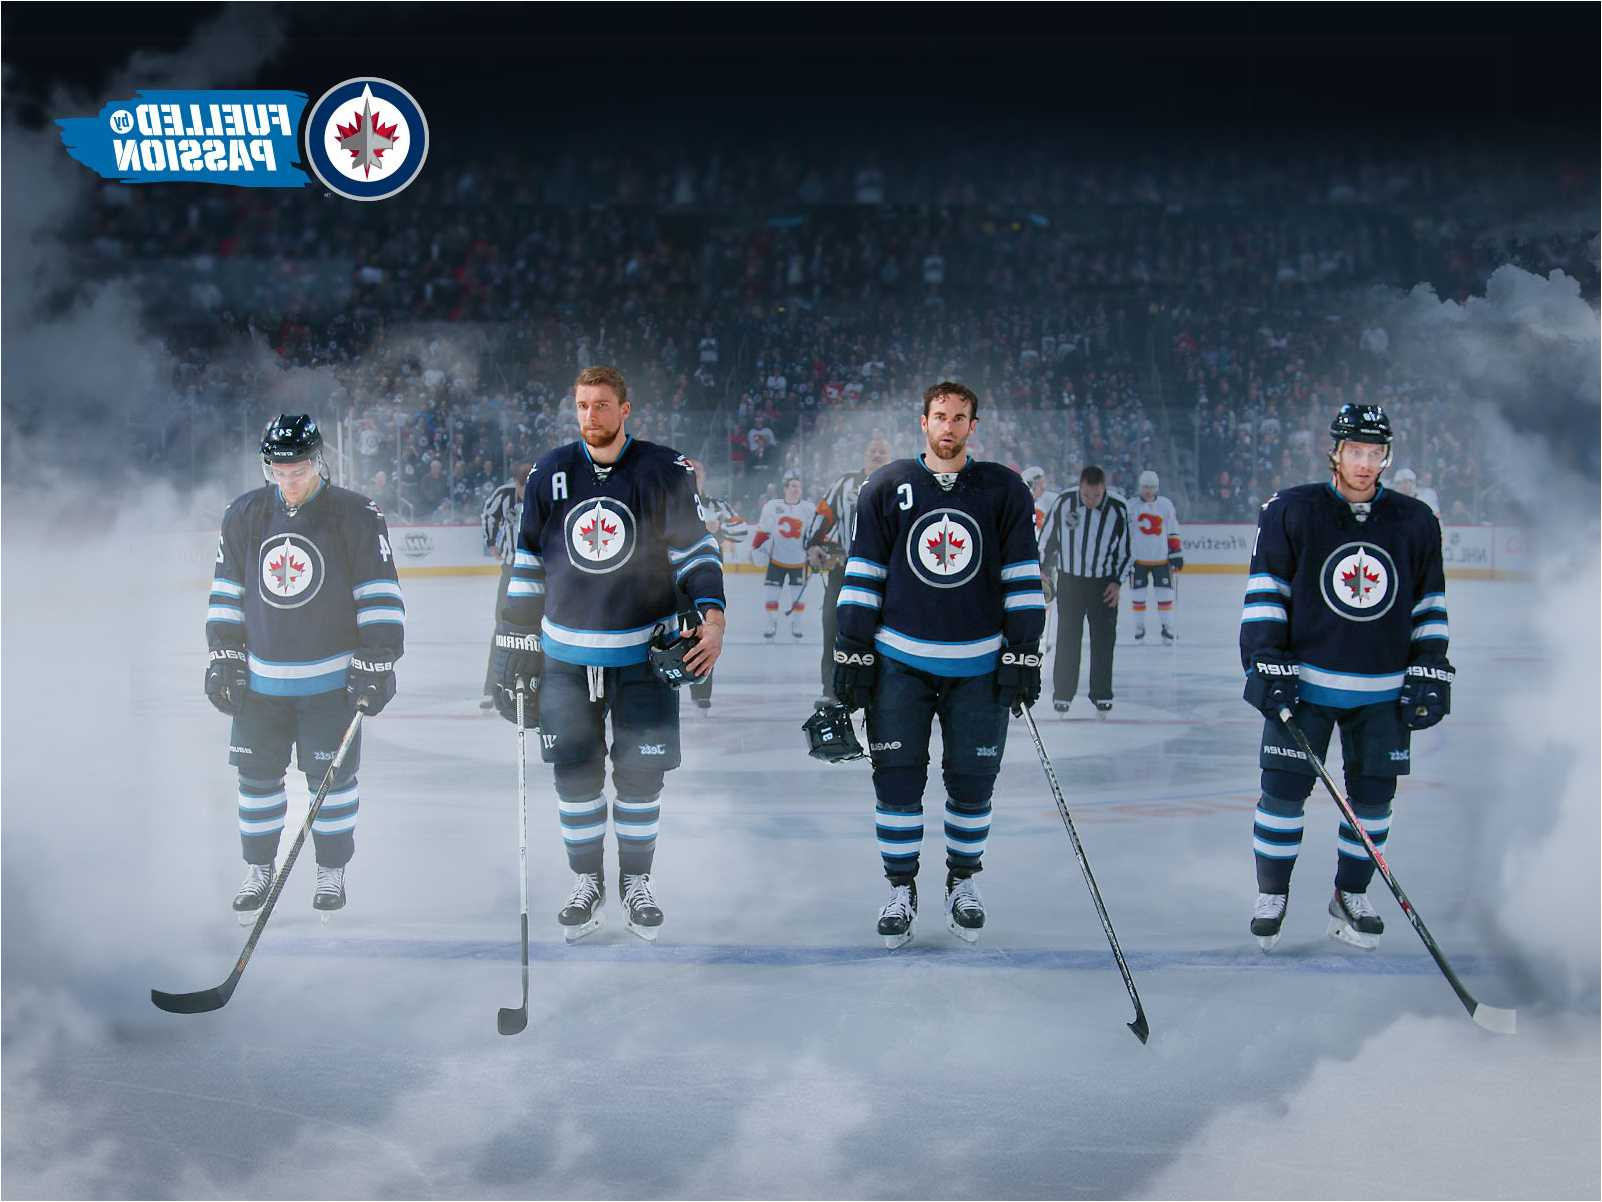 Winnipeg Jets Wallpaper Group (37+), Download for free